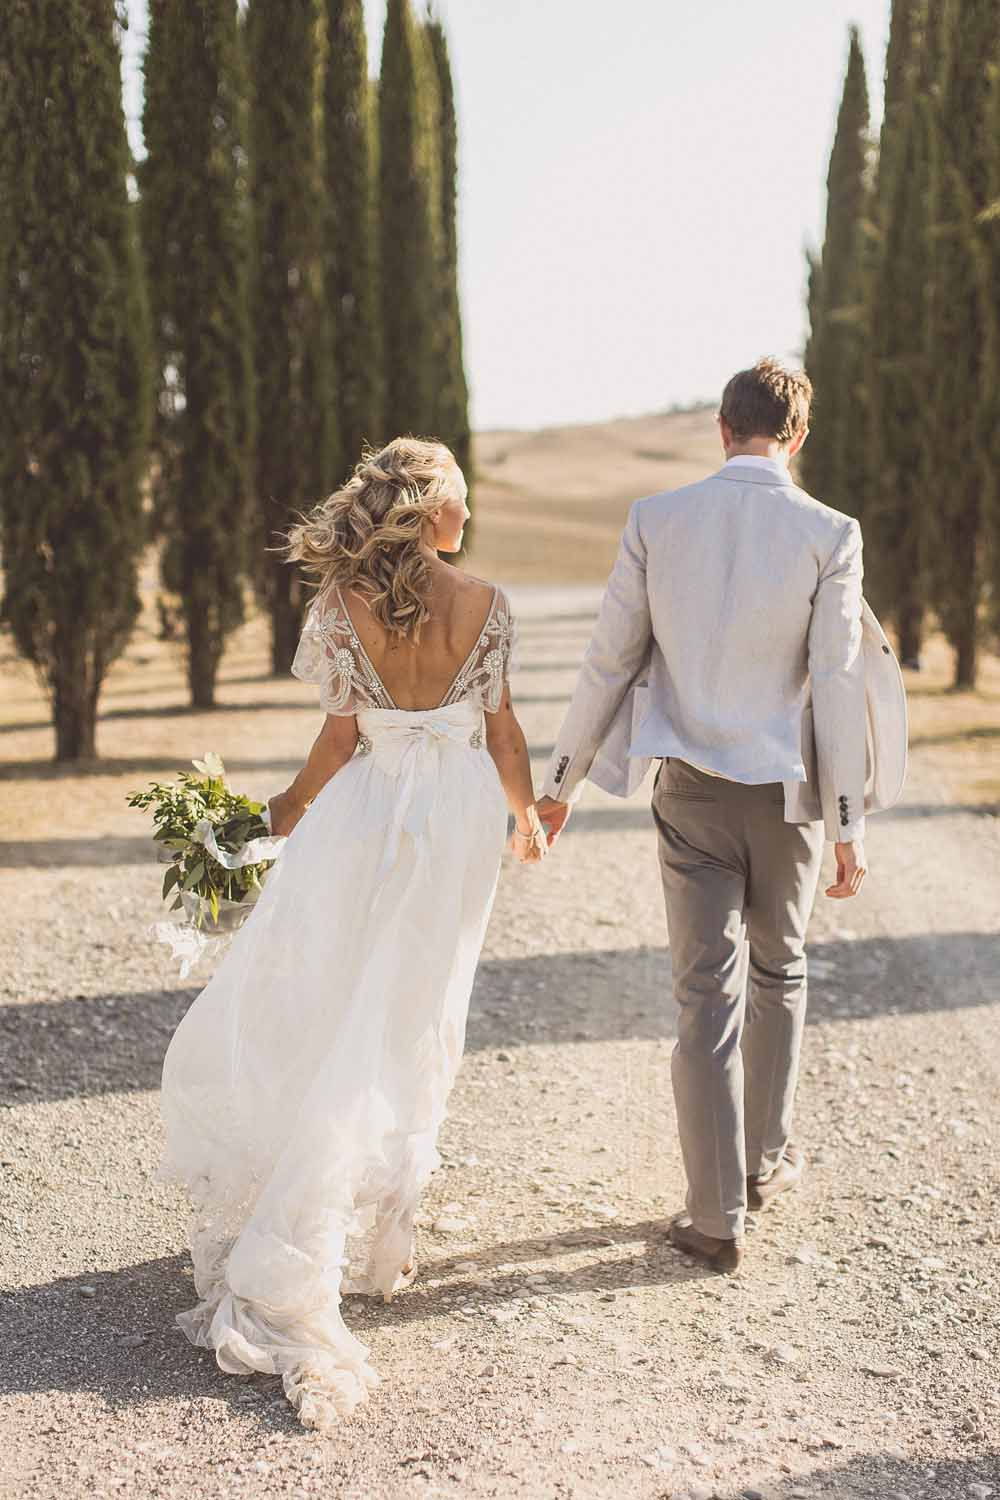 Anna Campbell Adelaide Wedding Gown, Couple portraits Destination wedding Tuscany, Cypress Trees